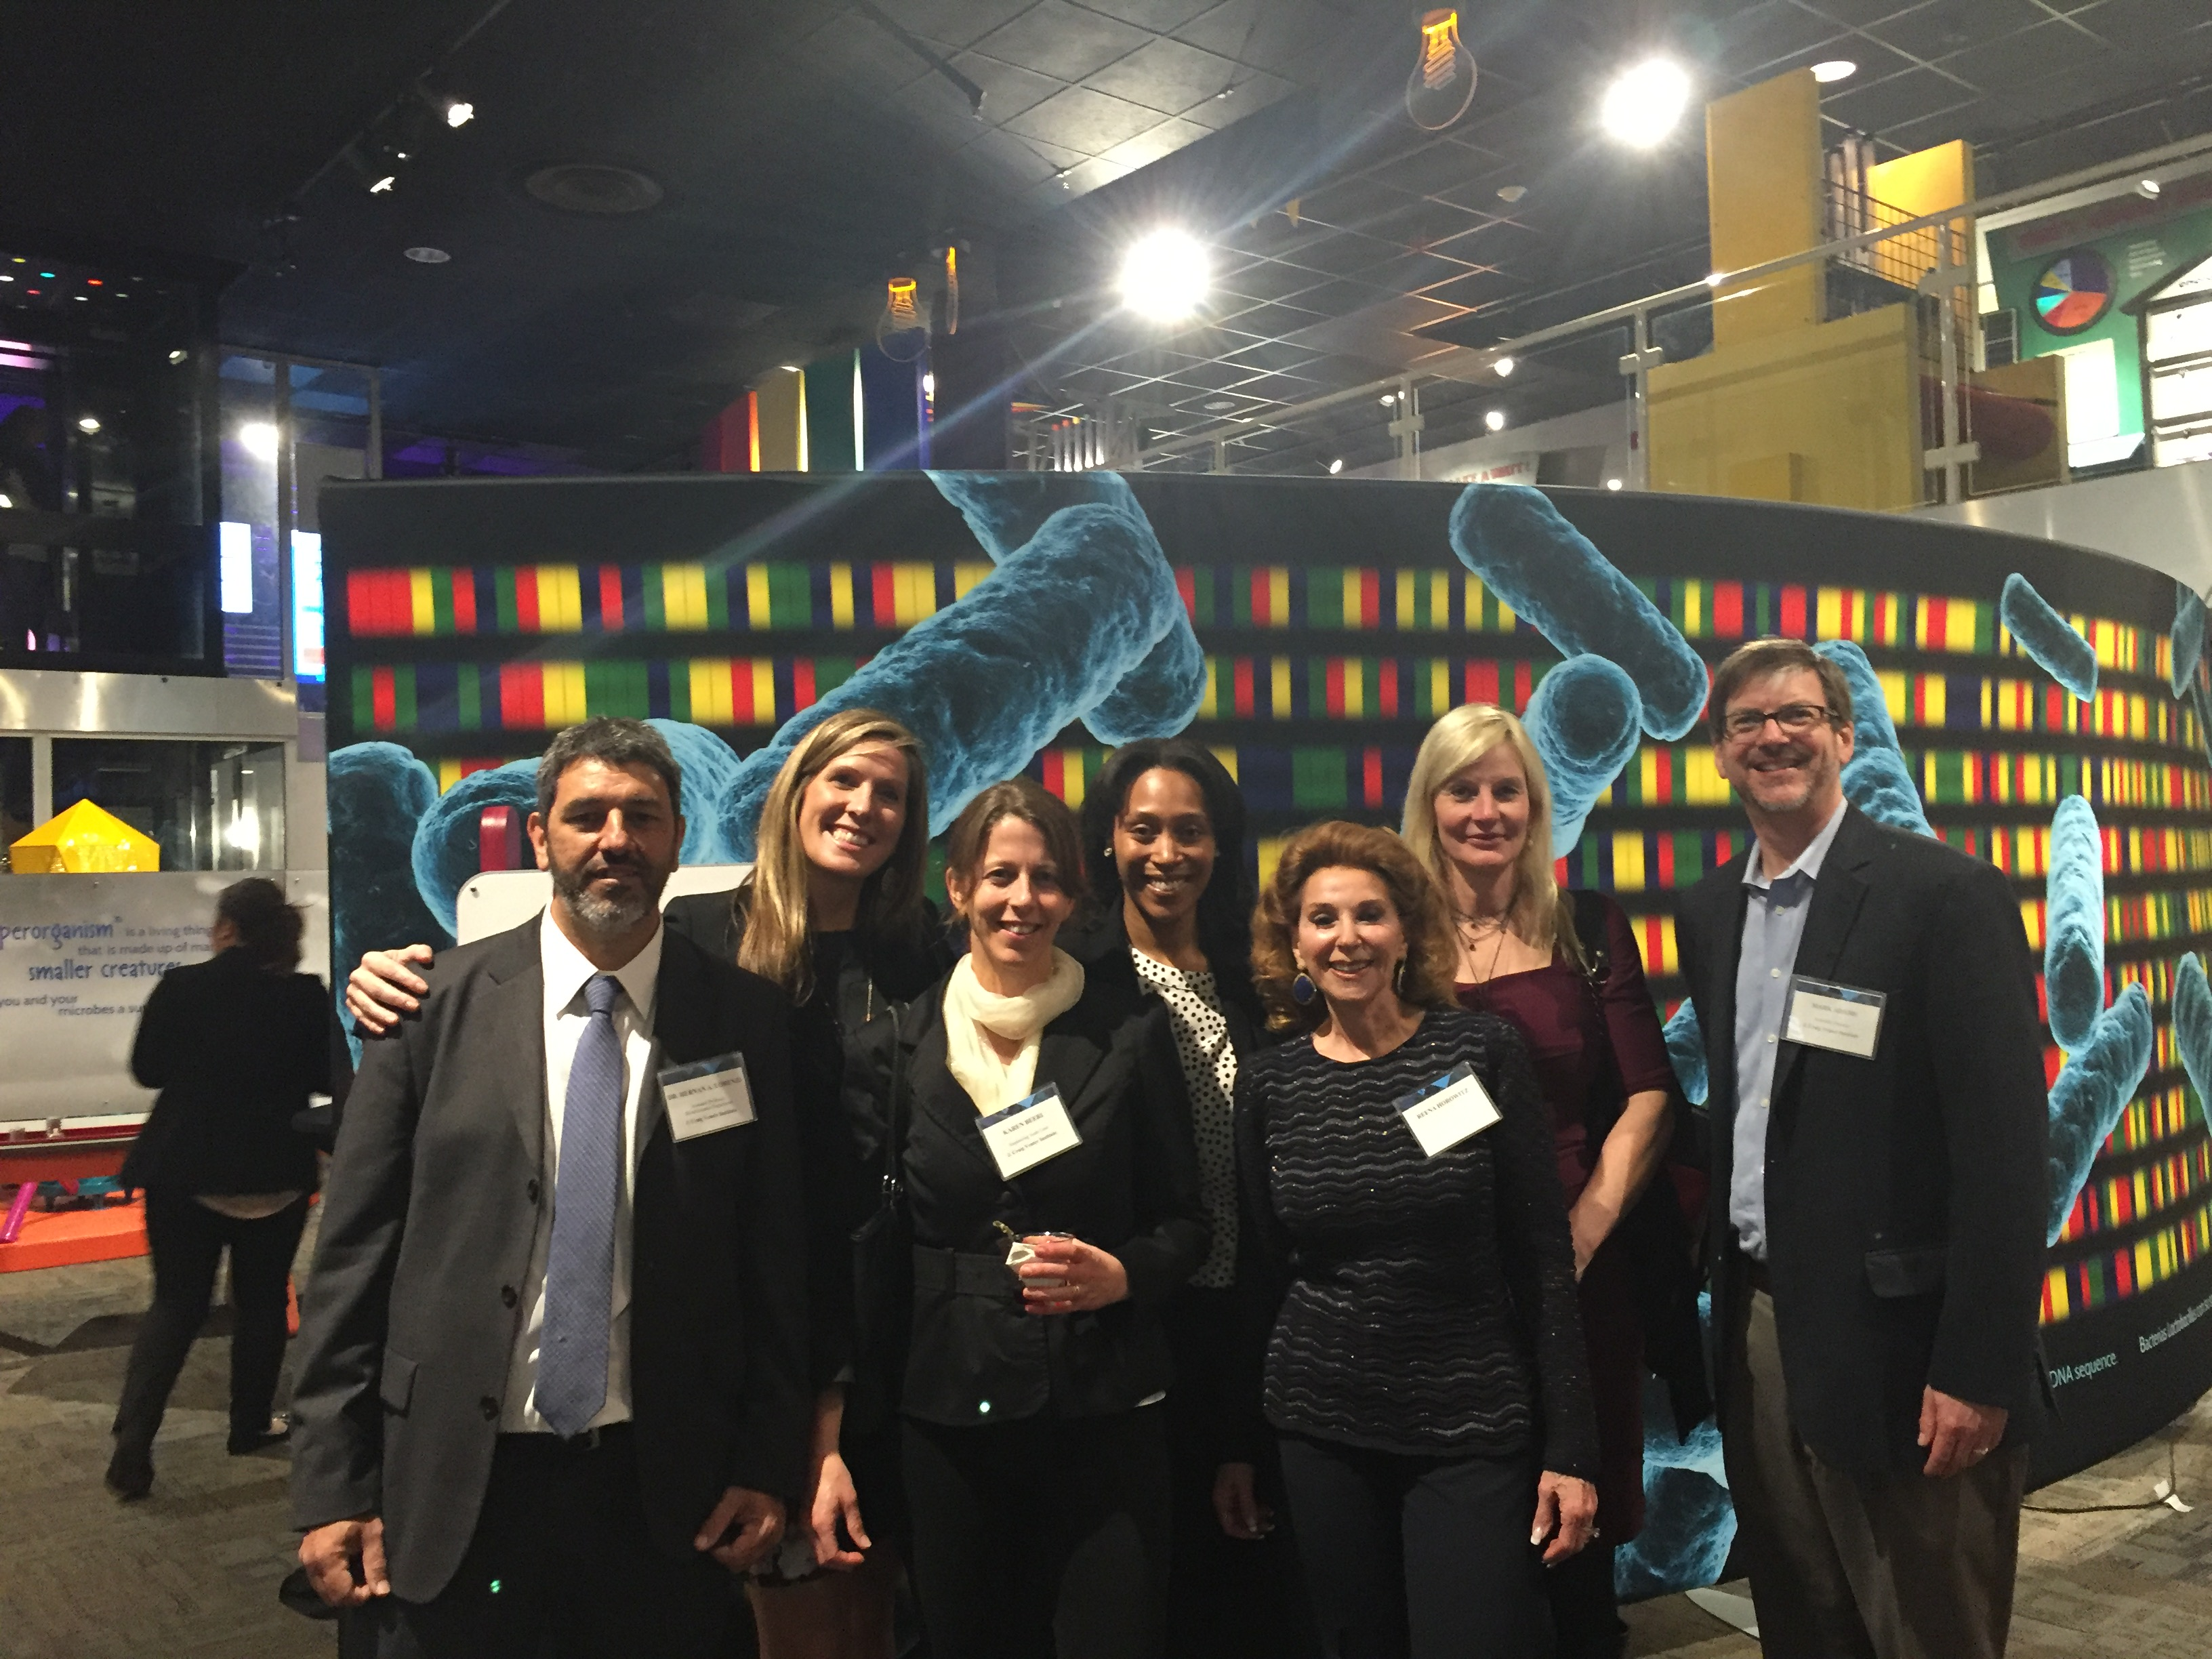 JCVI staff and friends came out to support the event (from left to right): Hernan Lorenzi, Katie Collins, Karen Beeri, Amani Rushing, CEO Council Member Reena Horowitz, Nicole Deberg, Mark Adams.